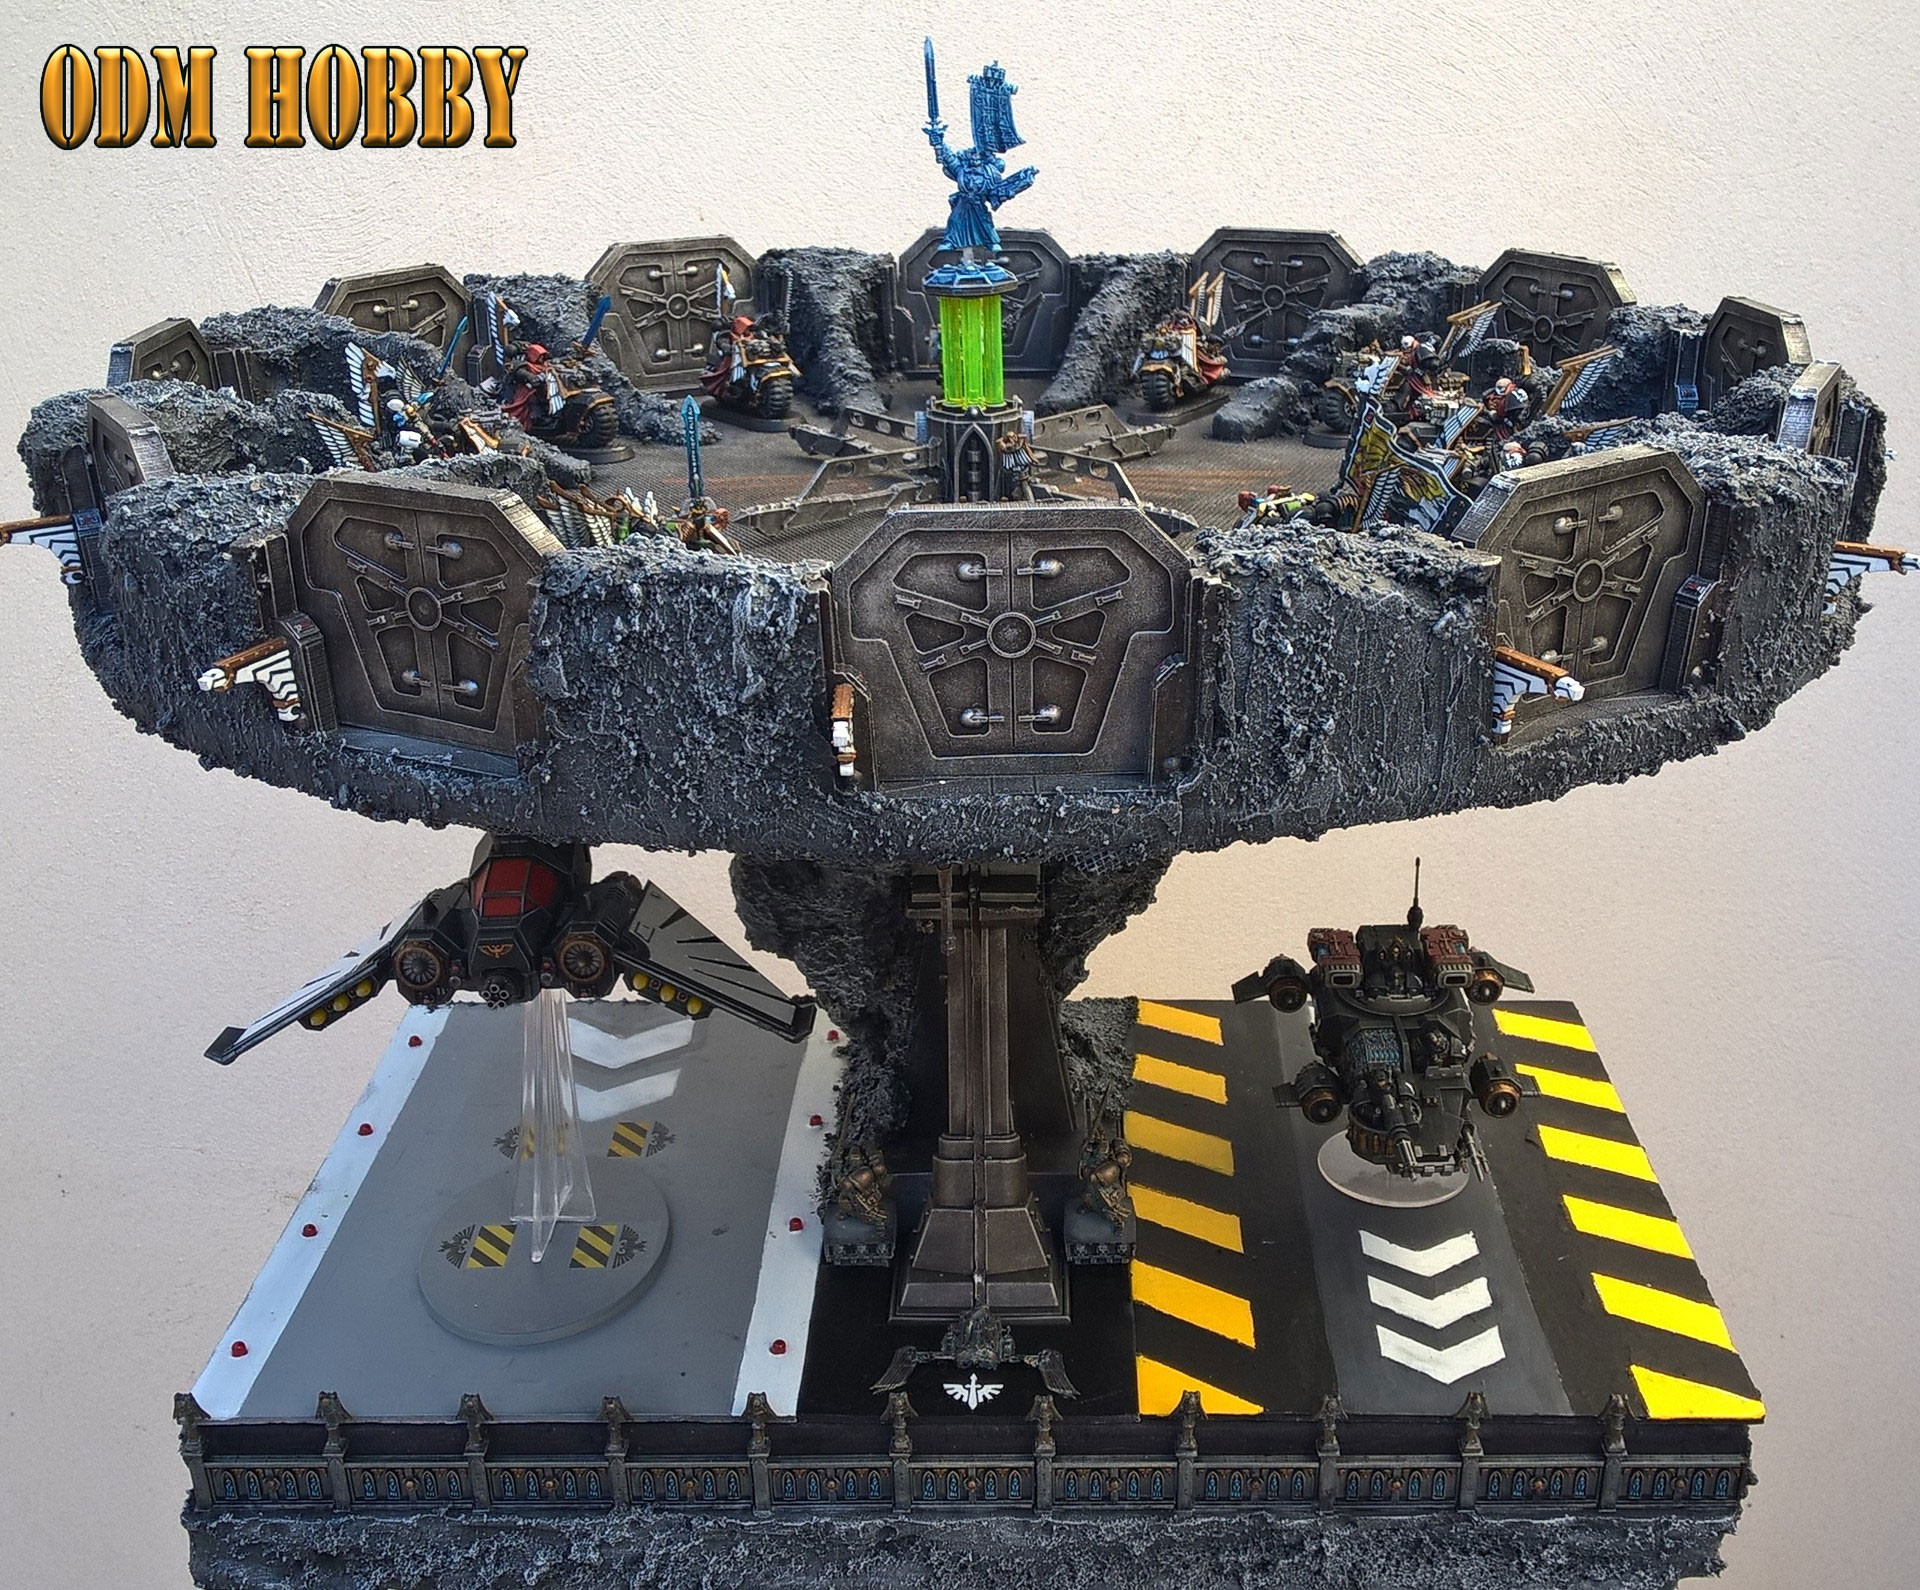 Pieces Detachees Store Banne Roche Dark Angels Roc Armies On Parade 2015 Odmhobby